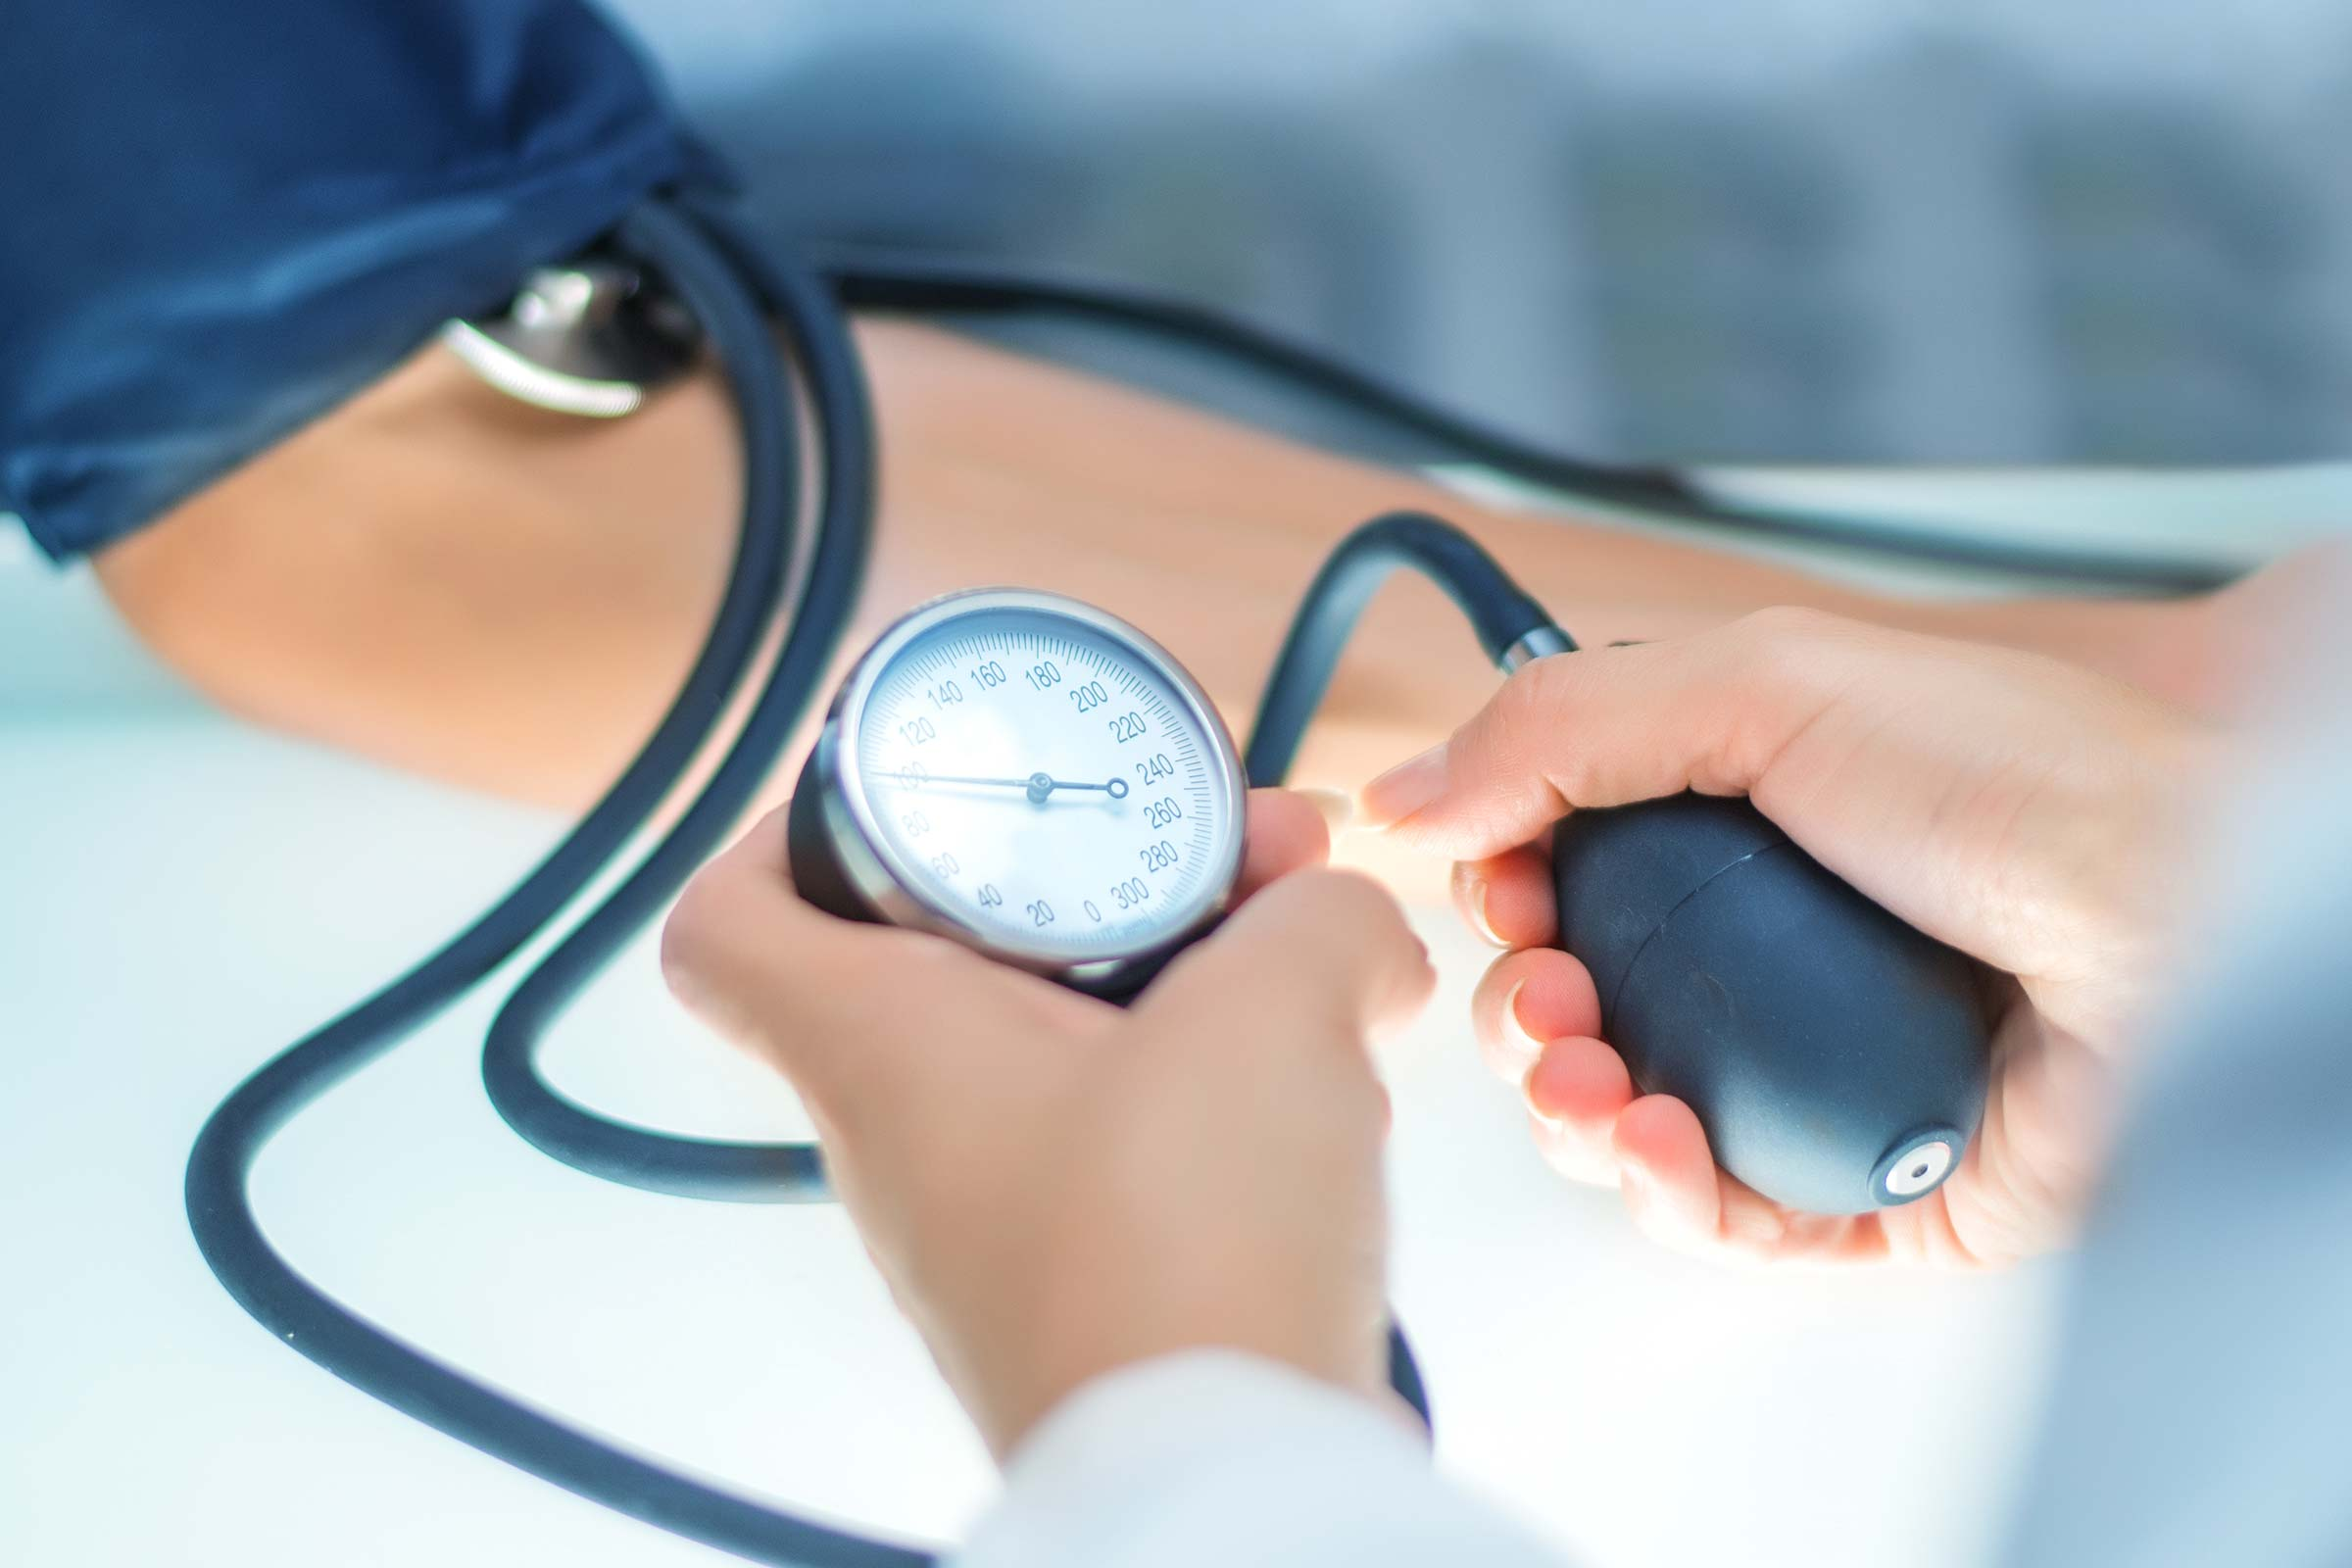 Low Blood Pressure: Causes, Symptoms And Treatment